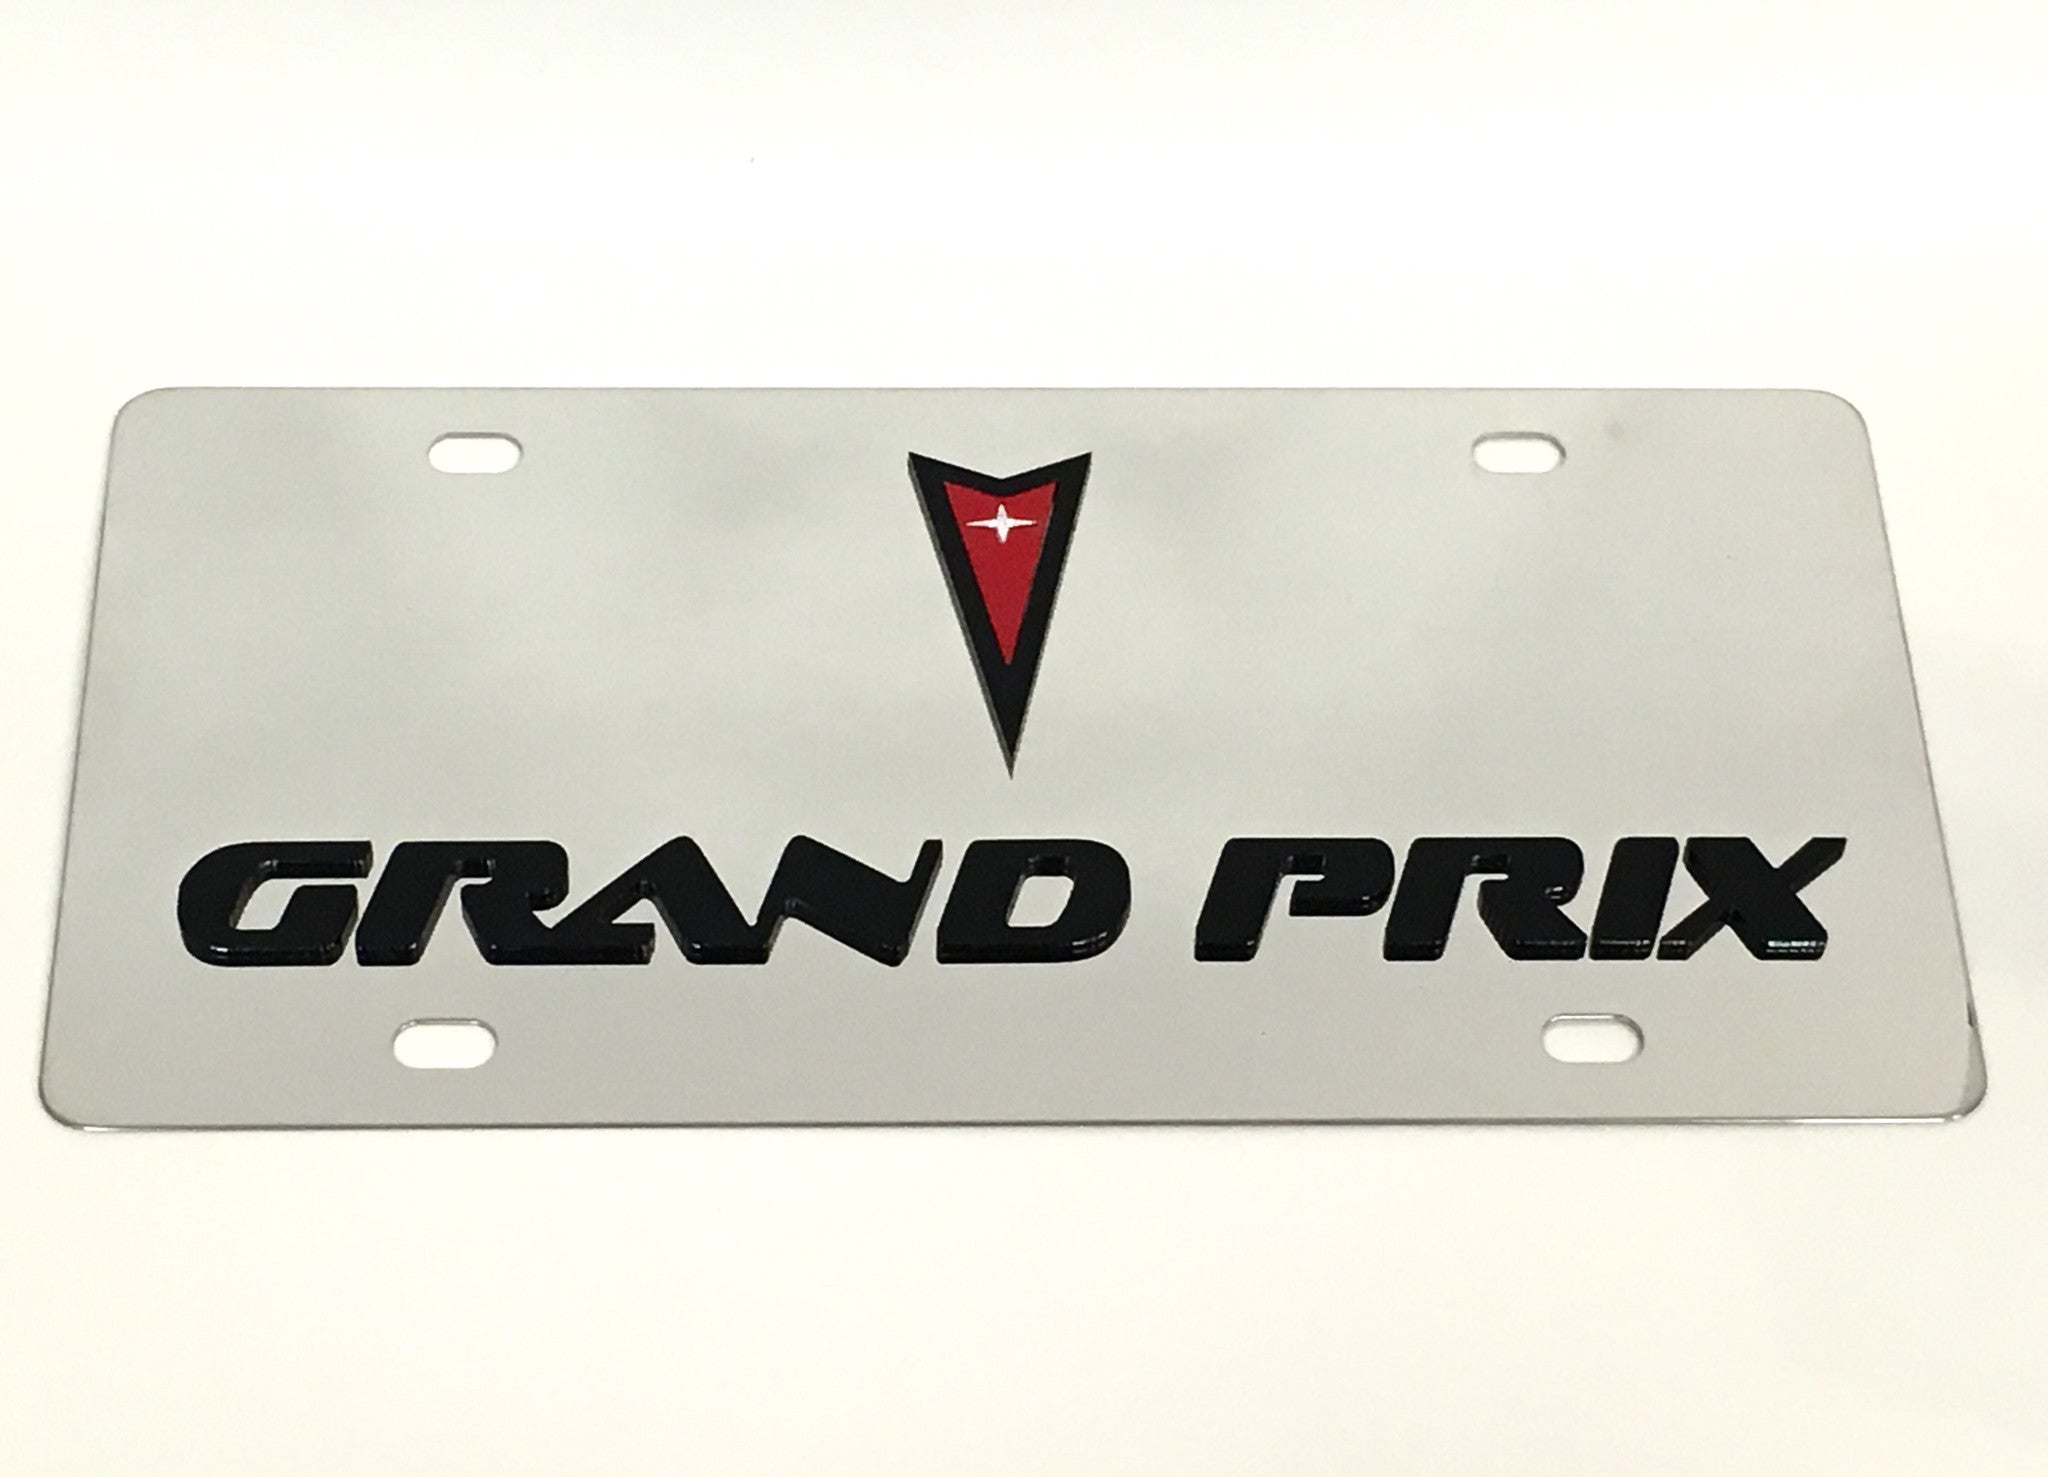 Pontiac Grand Prix Stainless Steel License Plate